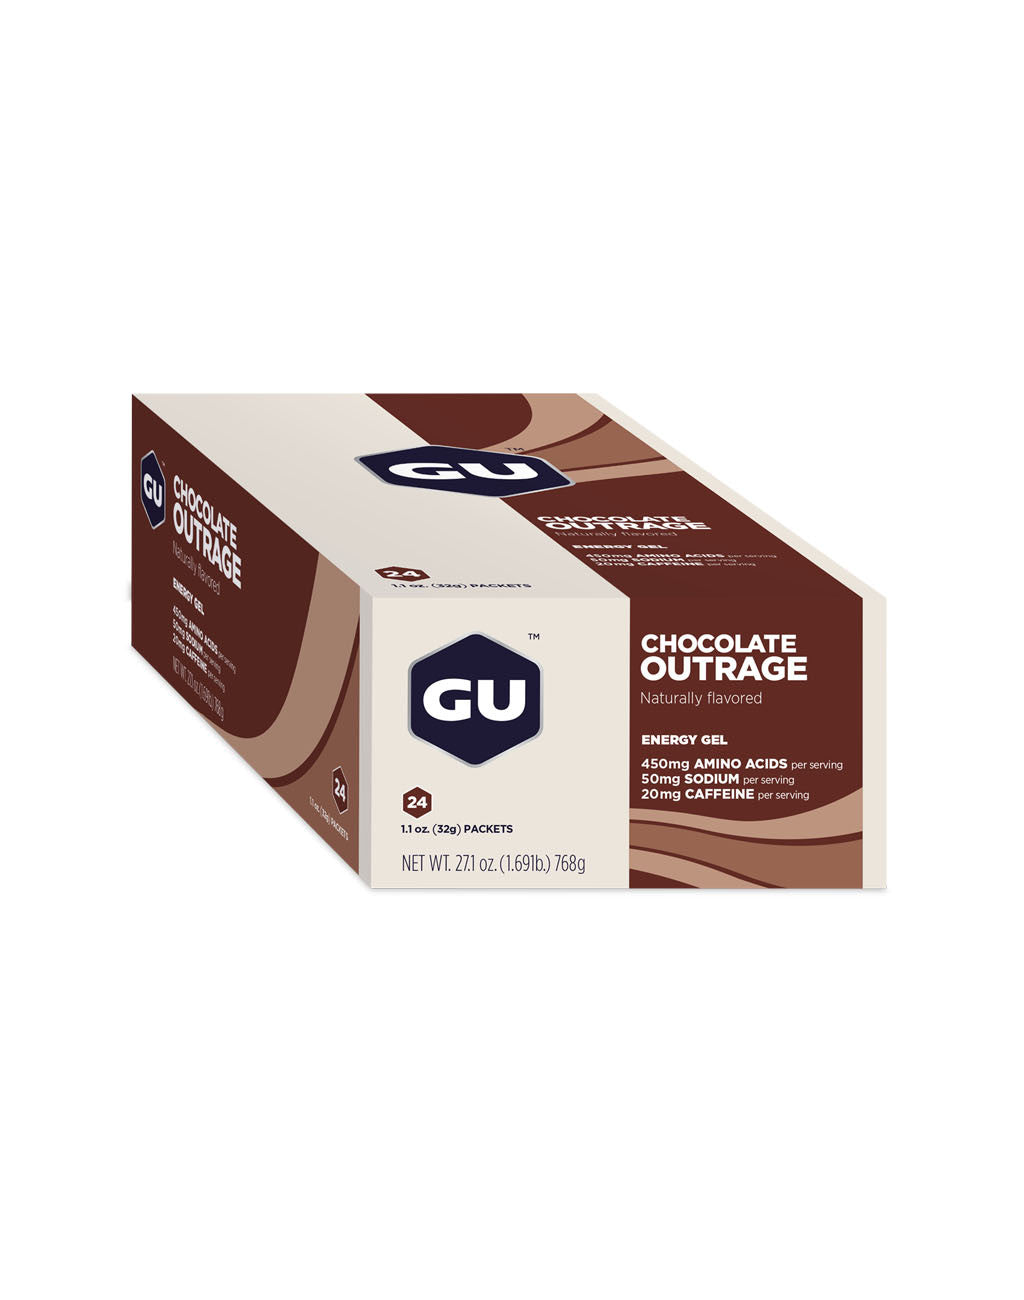 GU Energy Gel (24ct box)Chocolate Outrage_master_image